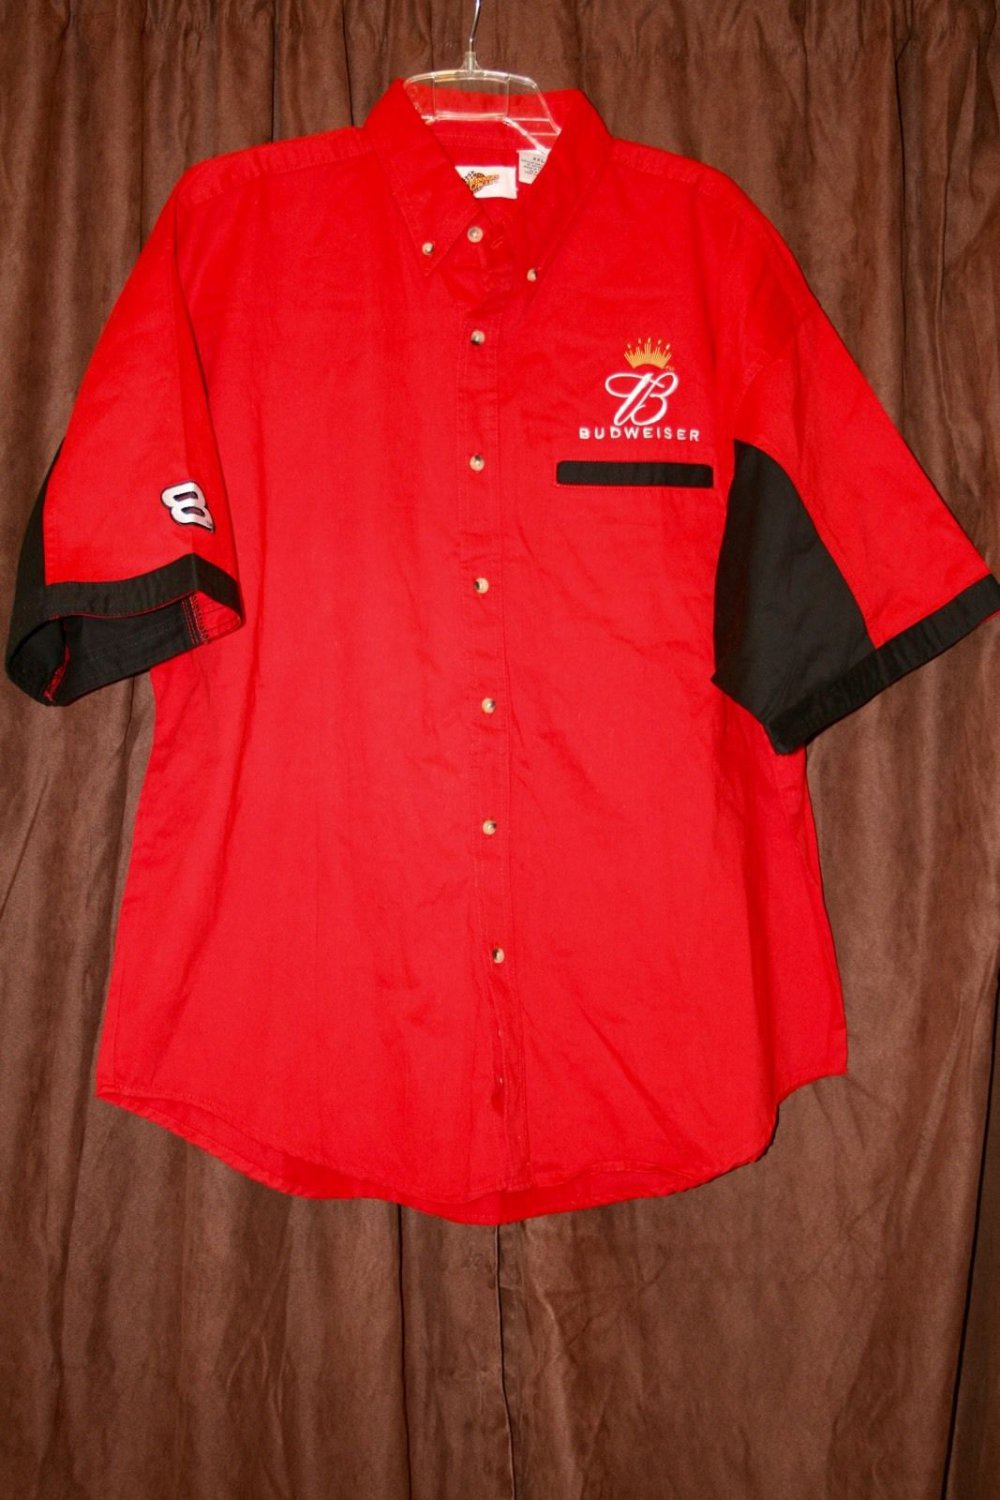 BUDWEISER DALE JR. 8 EMBROIDERED RED TWILL SHIRT XL Winner's Circle